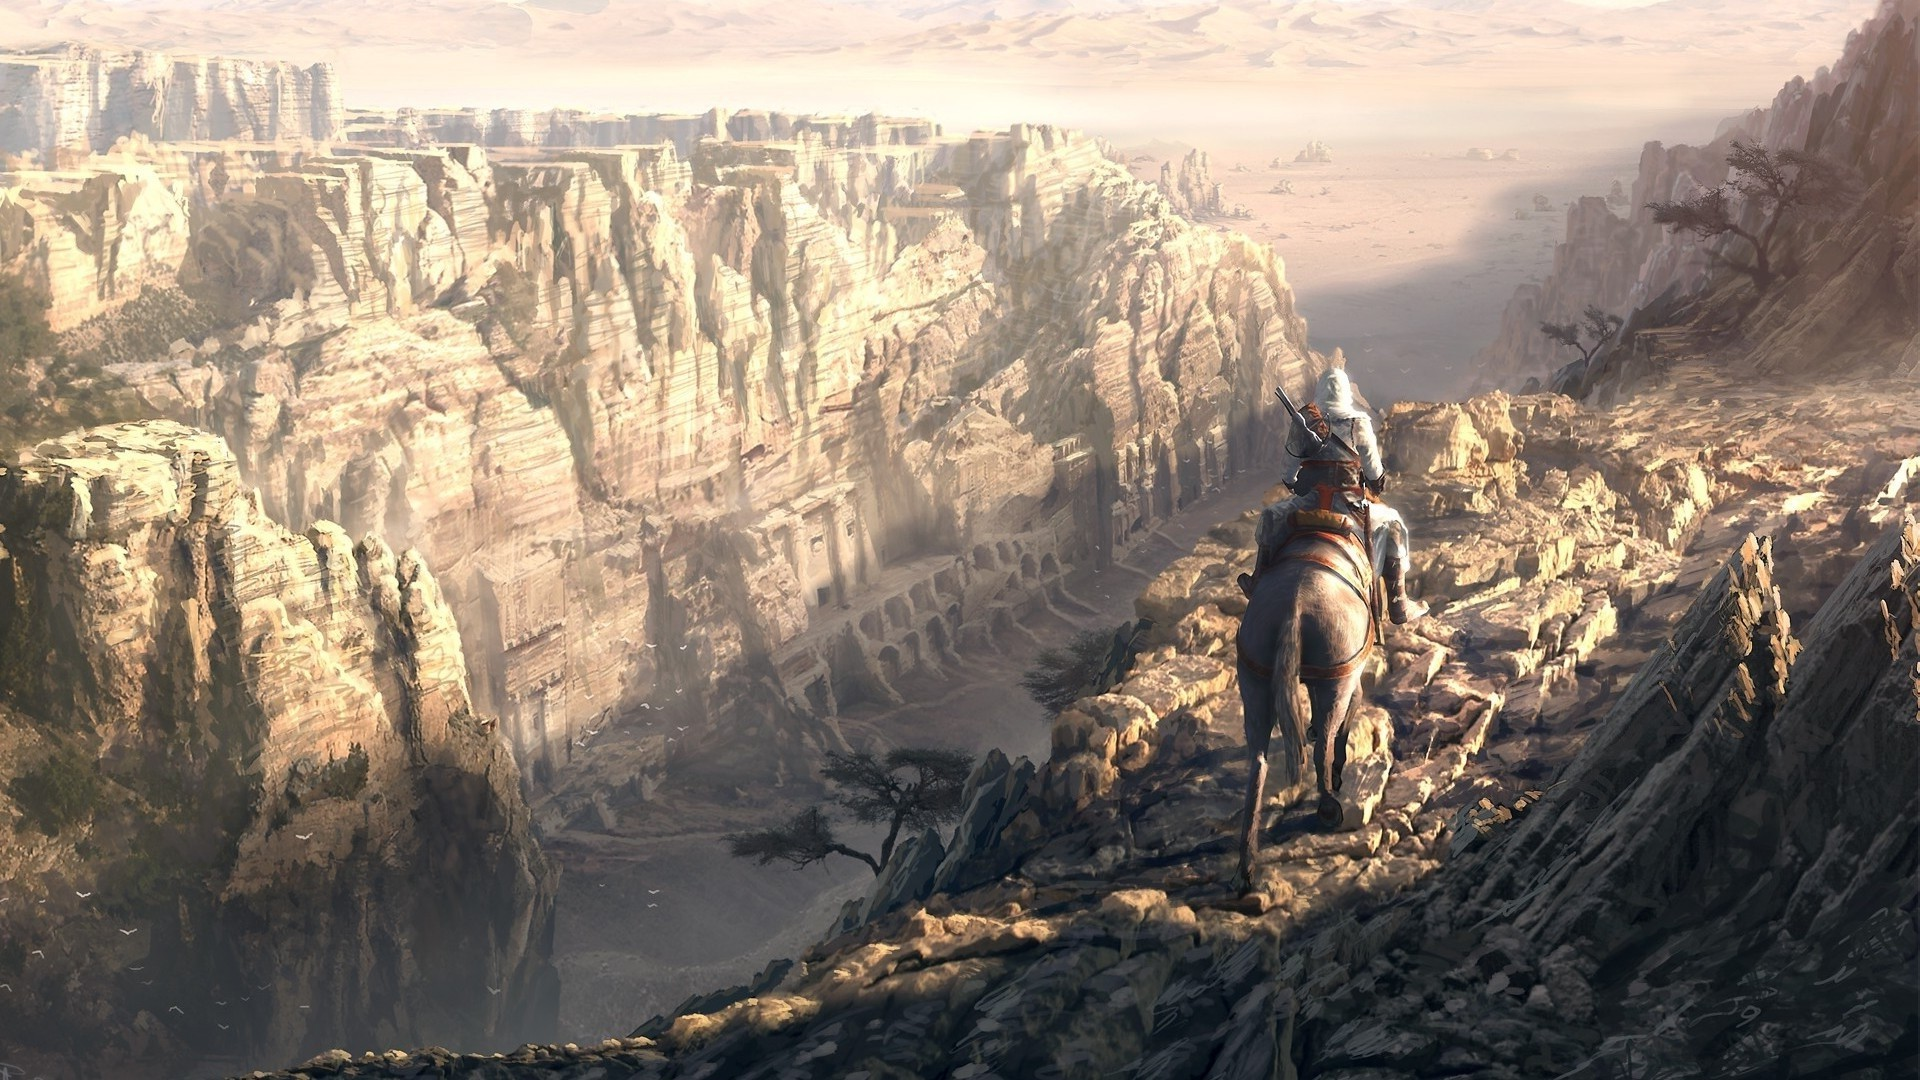 Assassins Creed 2 Hd Wallpapers Video Games Assassins Creed Concept Art Wallpapers Hd